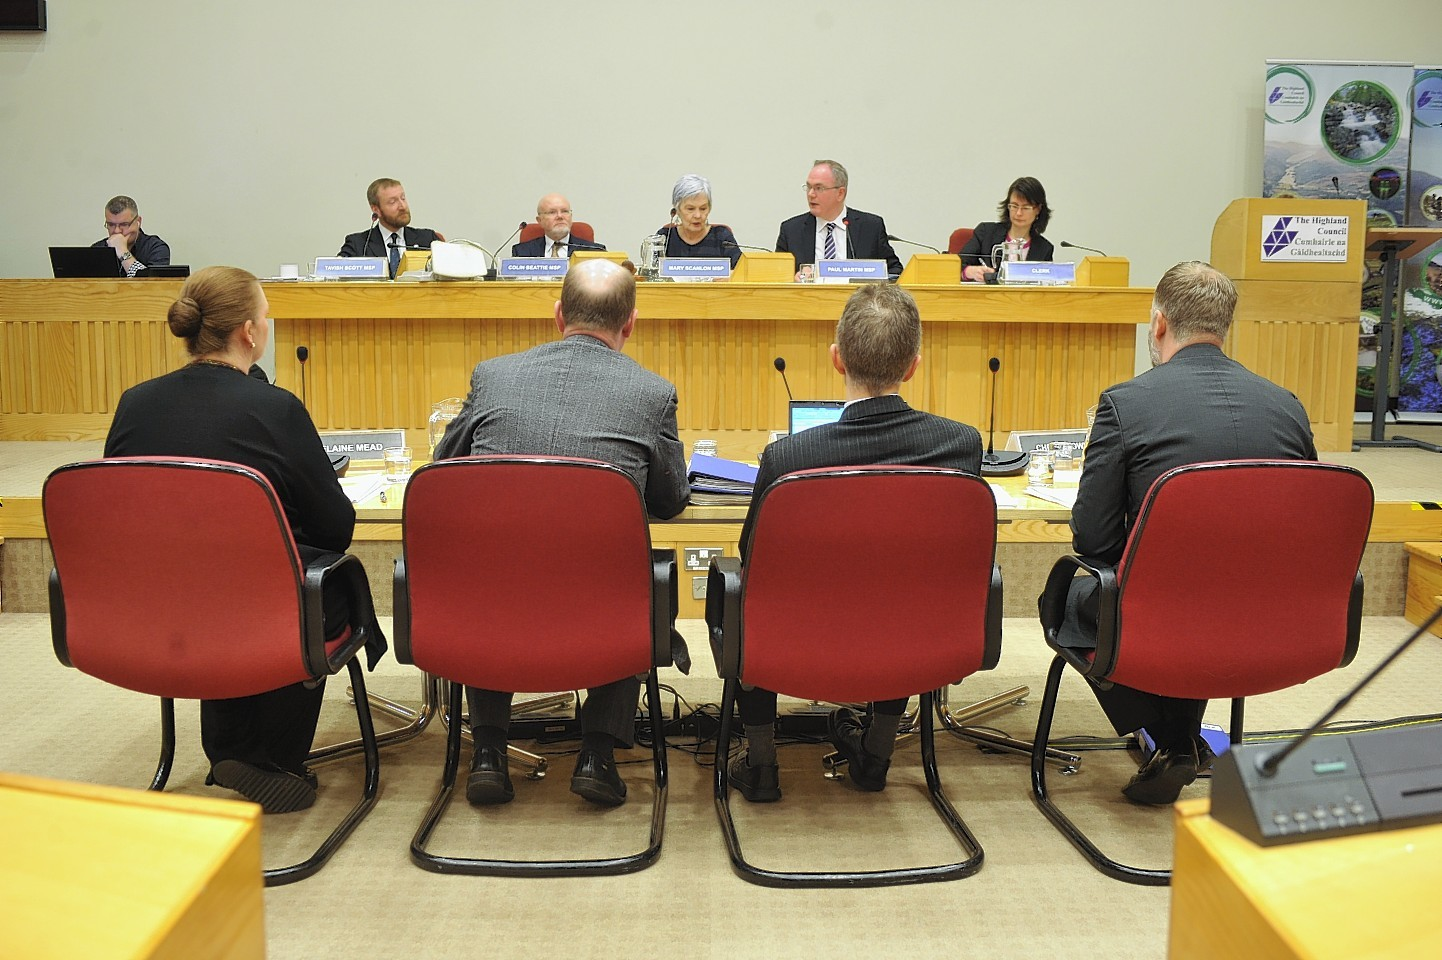 Representatives of NHS Highland face the Public Audit Committee